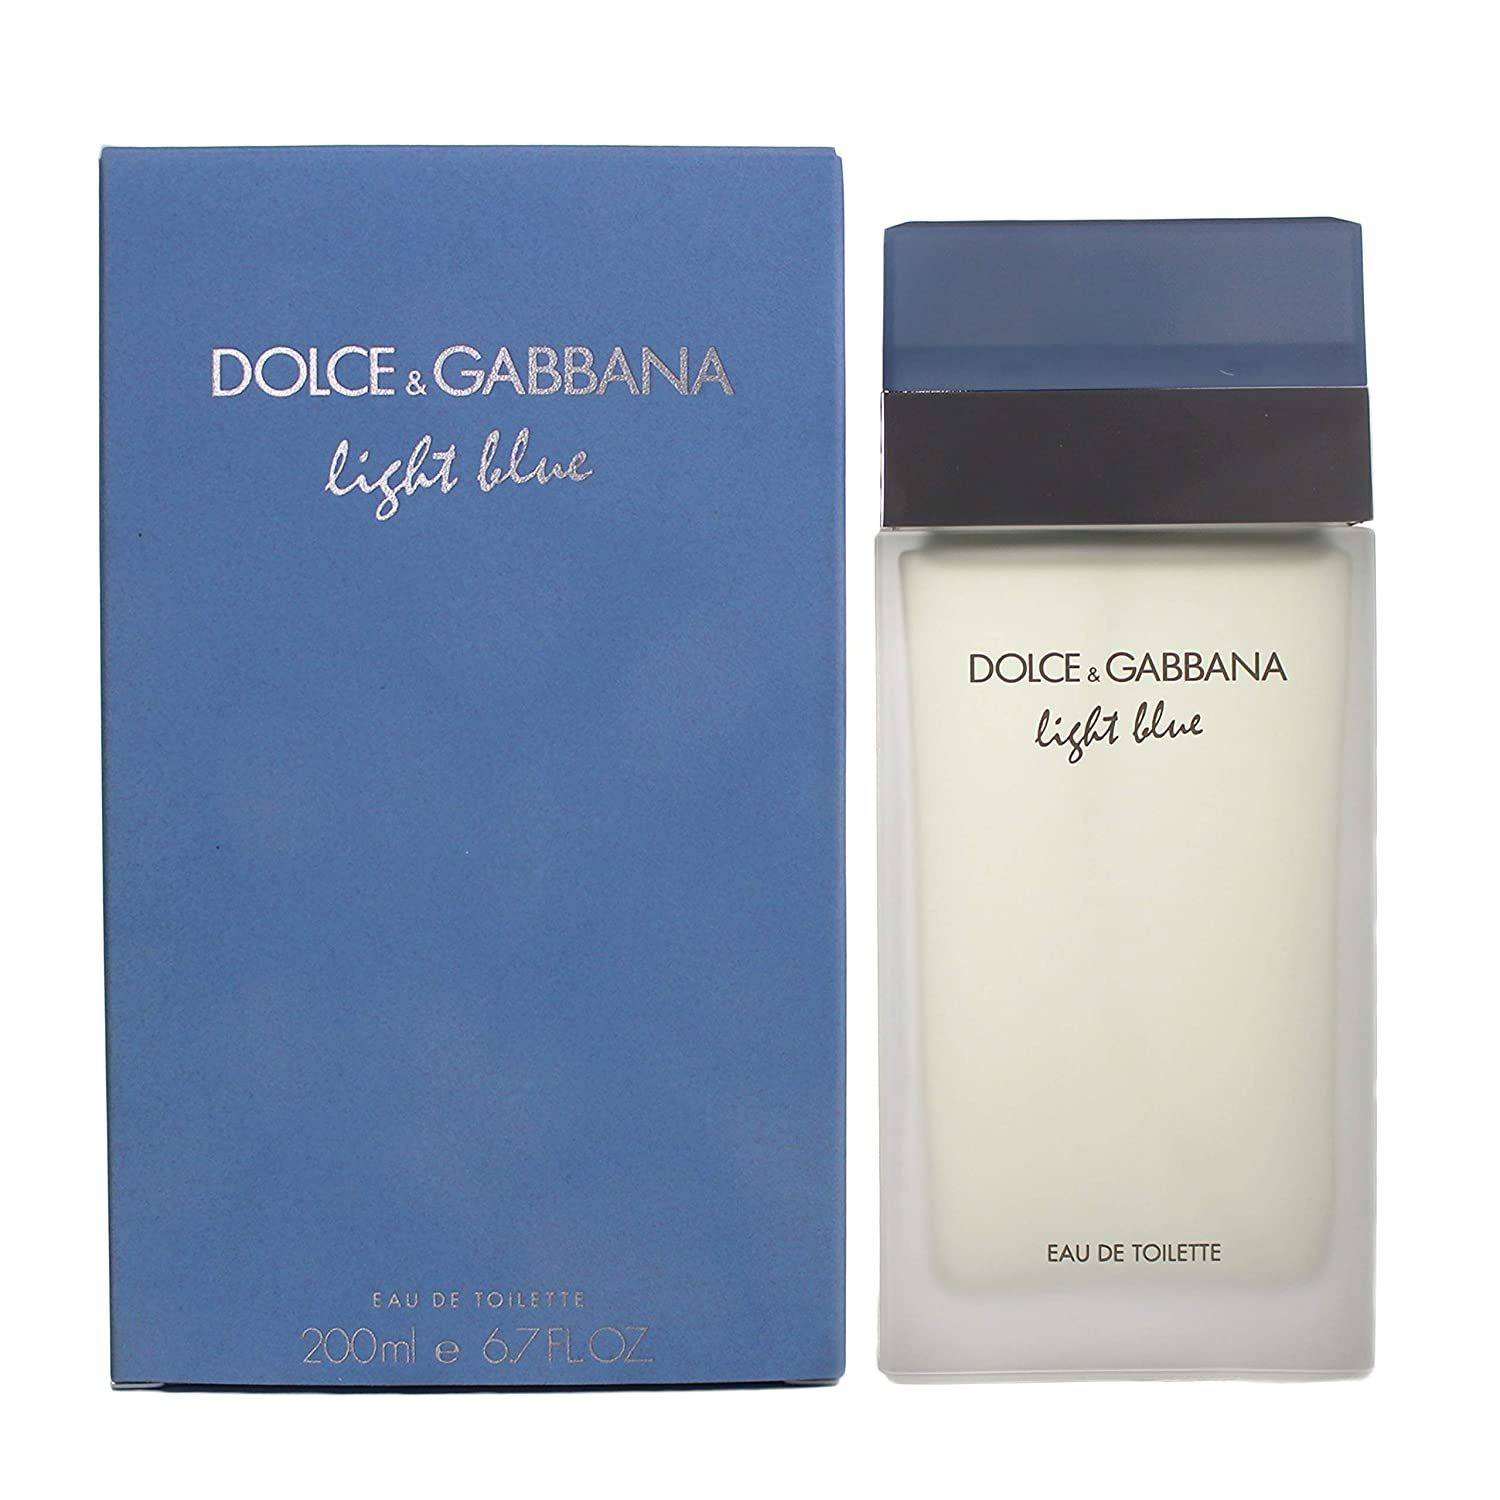 Dolce Gabbana Women S Eau De Toilette Spray Light Blue 6 7 Fl Oz Pack Of 1 Beauty